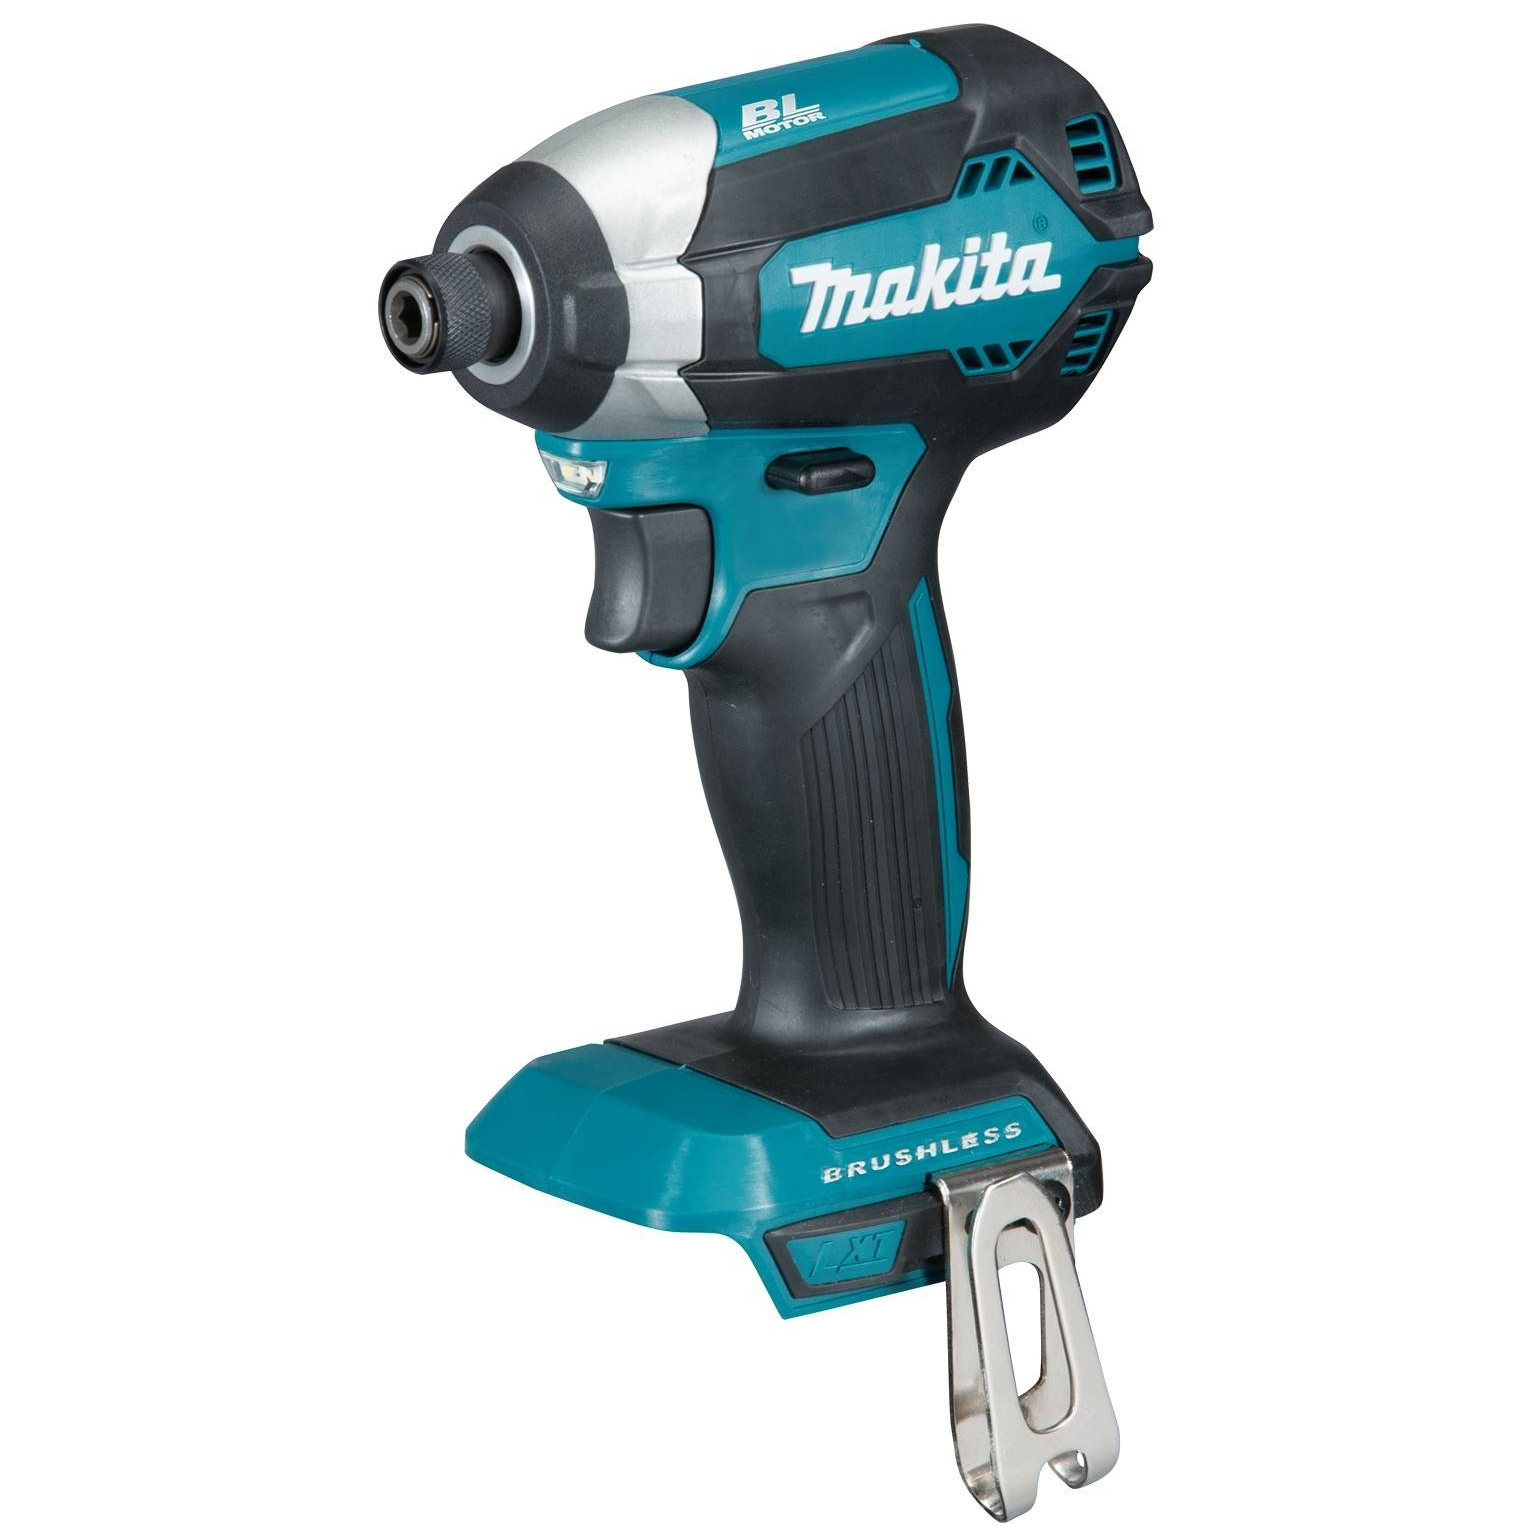 Makita 18v Rotary Hammer Drill besides Milwaukee M18chm 0 Sds Max Drill M18 Bare Unit m18chm 0 in addition Milwaukee M18fdd 0 M18 Fuel Drill Driver Body additionally Makita Xfd07m Lxt Lithium Ion Brushless Cordless Driver Drill Kit 12 Inch additionally 351984864649. on brushless motor for battery powered drill